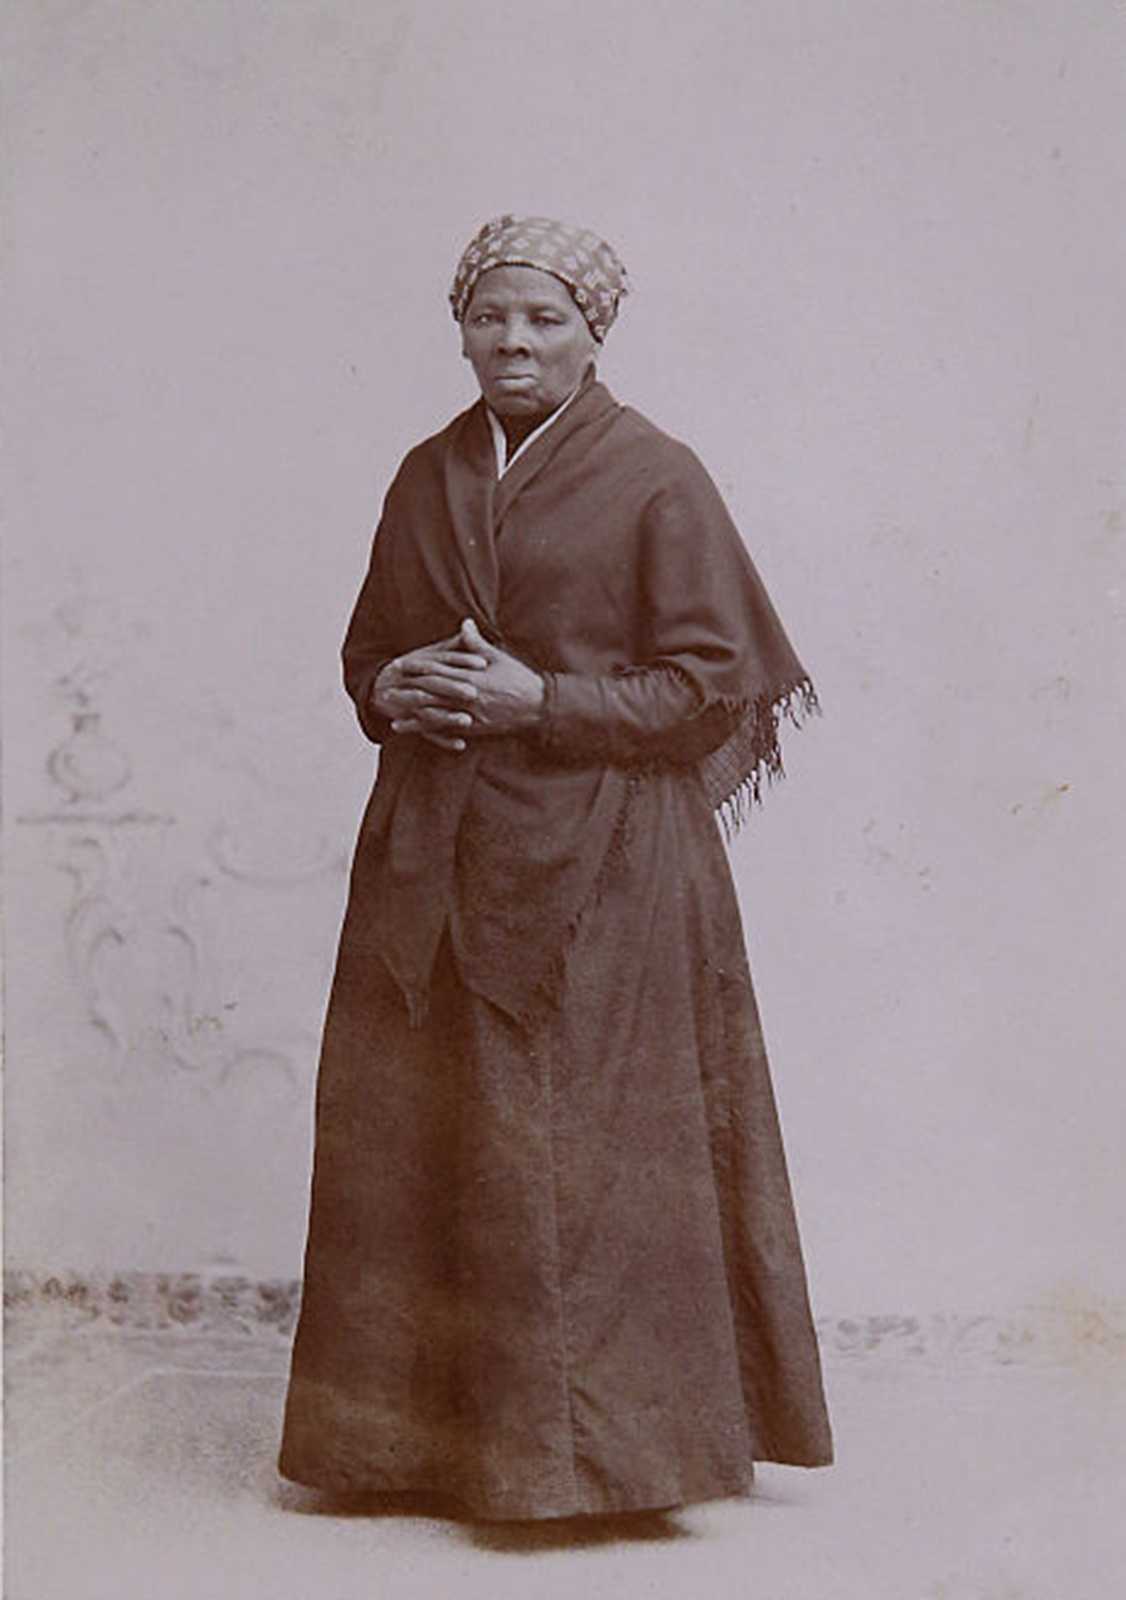 A photograph of escaped slave, abolitionist and Union spy Harriet Tubman that was acquired by the Smithsonian is displayed before a hearing of the House Administration Committee in the Longworth House Office Building on Capitol Hill on June 17, 2015, in Washington, D.C. (Chip Somodevilla/Getty Images/TNS)